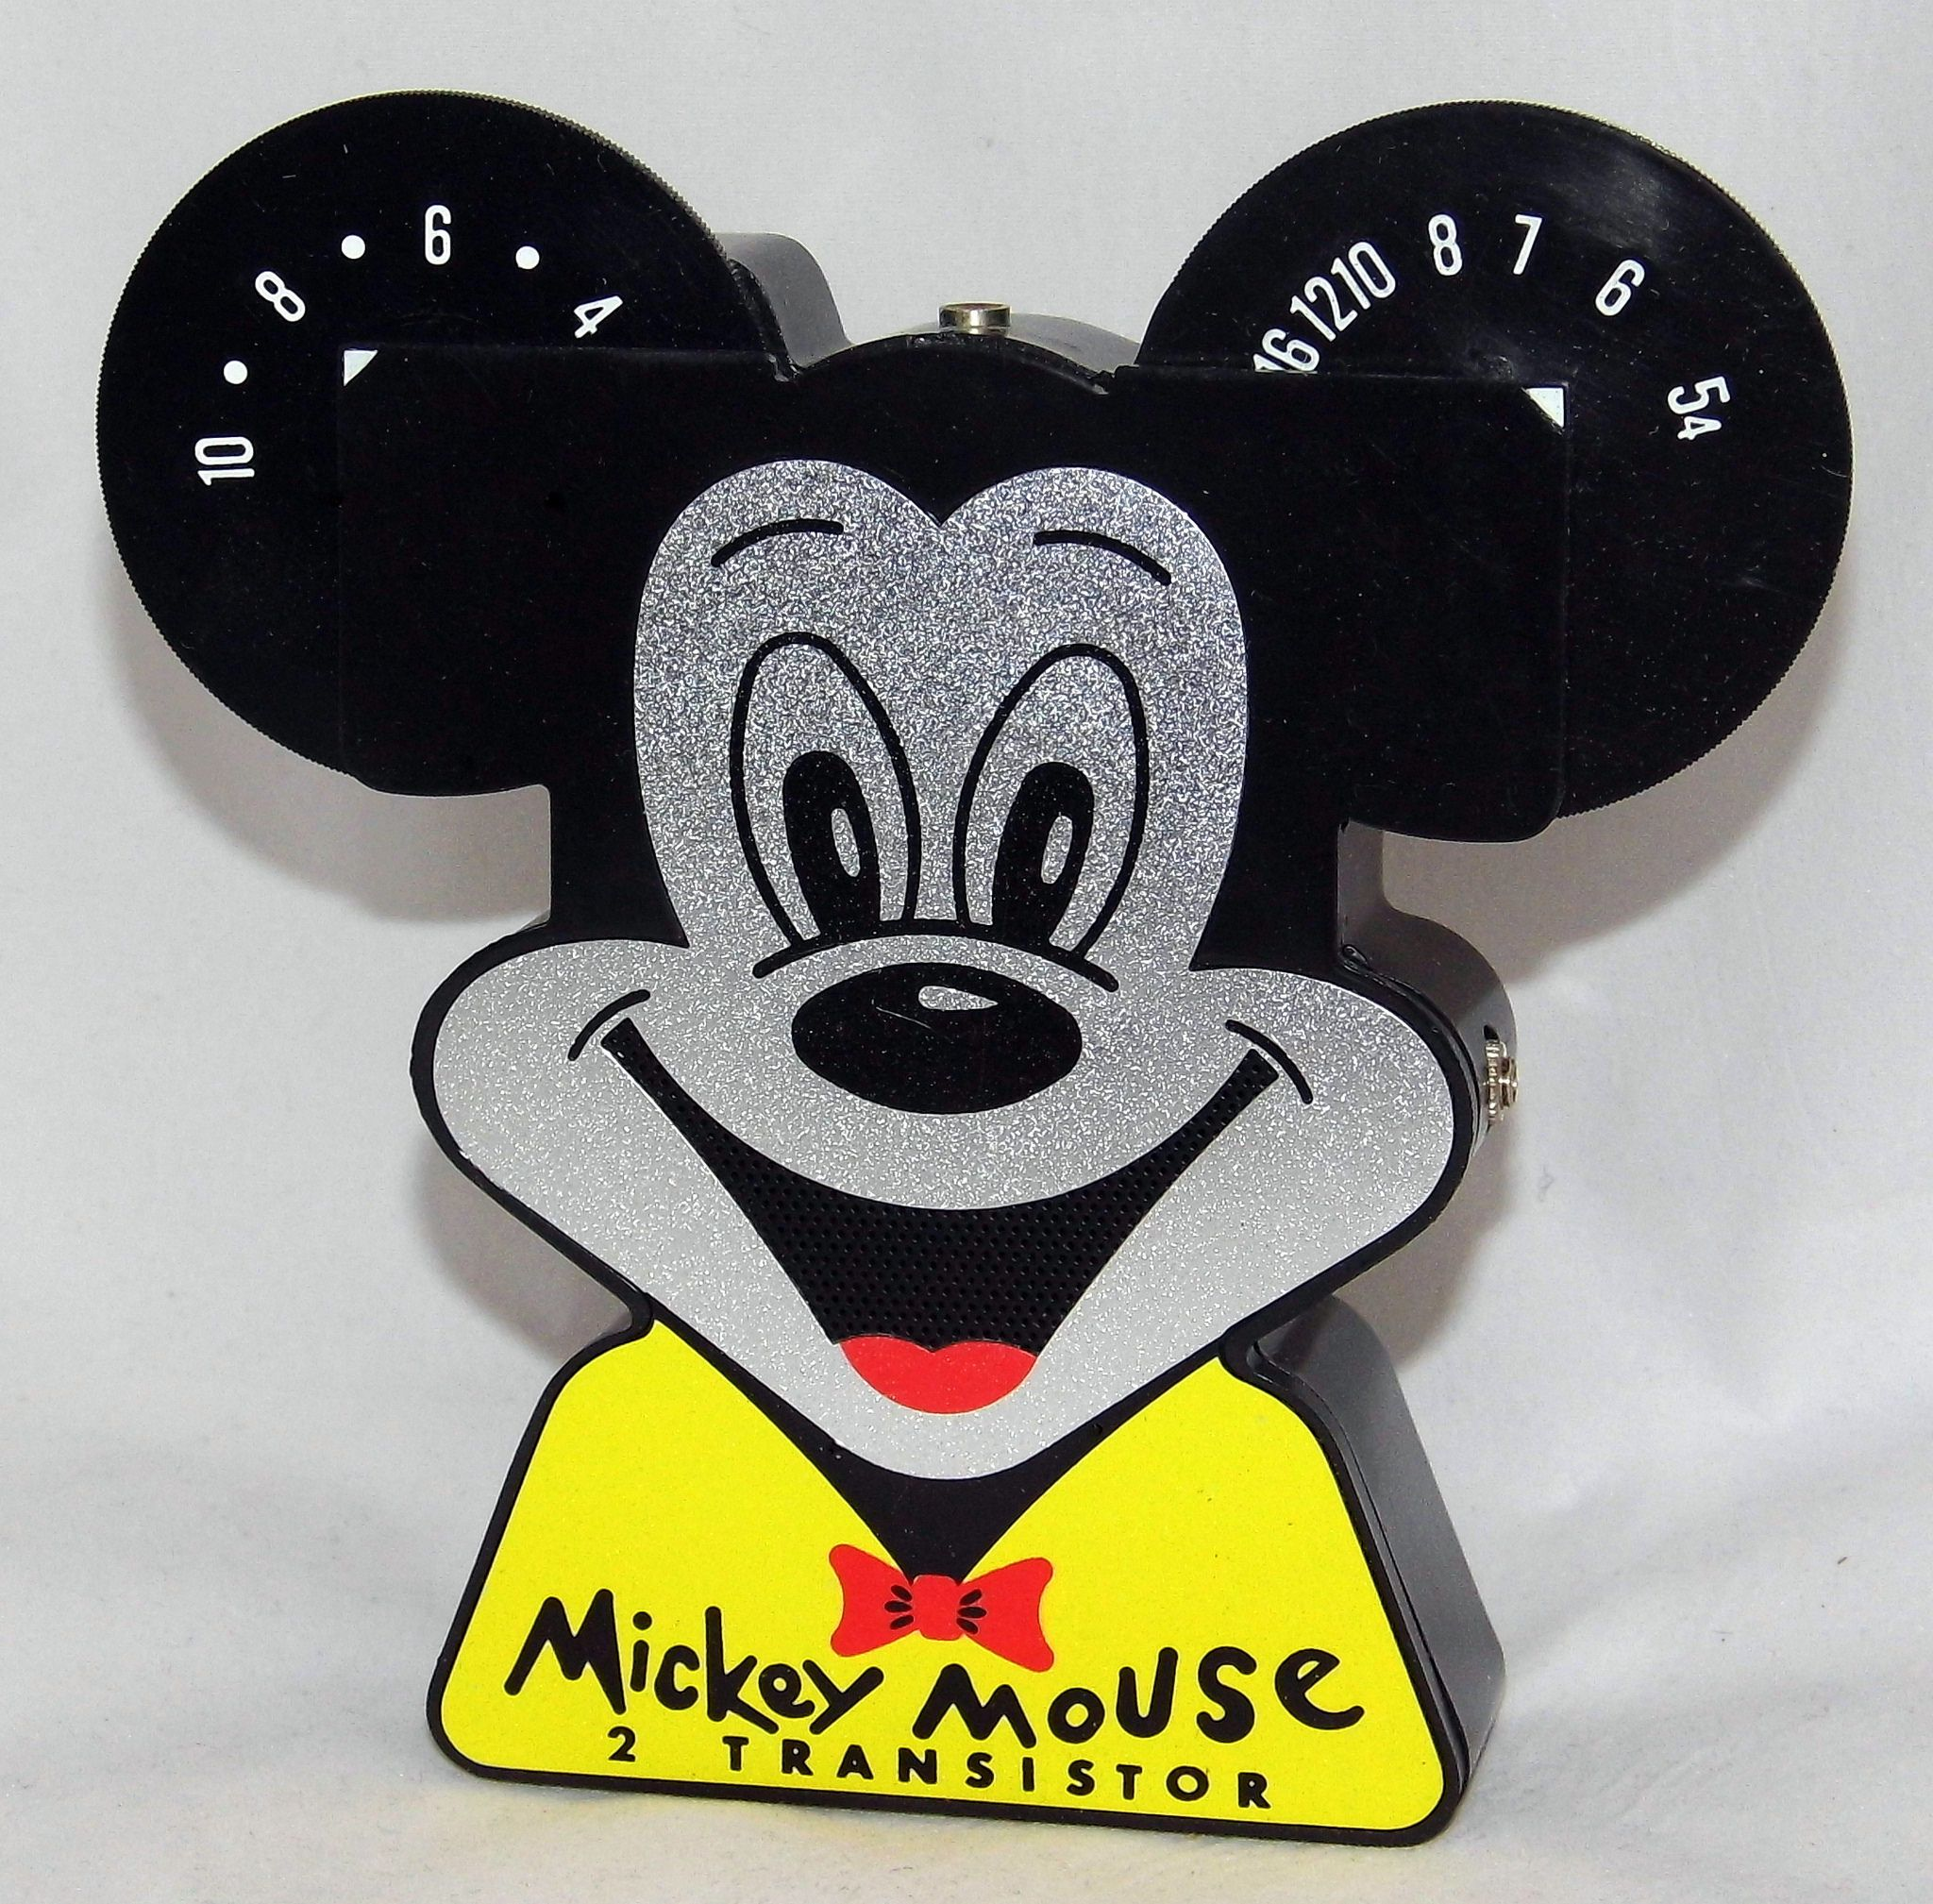 Vintage Mickey Mouse 2 Transistor Boy S Radio By Gabriel Toy Co No 015 Am Band Only Made In Japan Circa 1963 Vintage Mickey Mouse Vintage Mickey Mickey